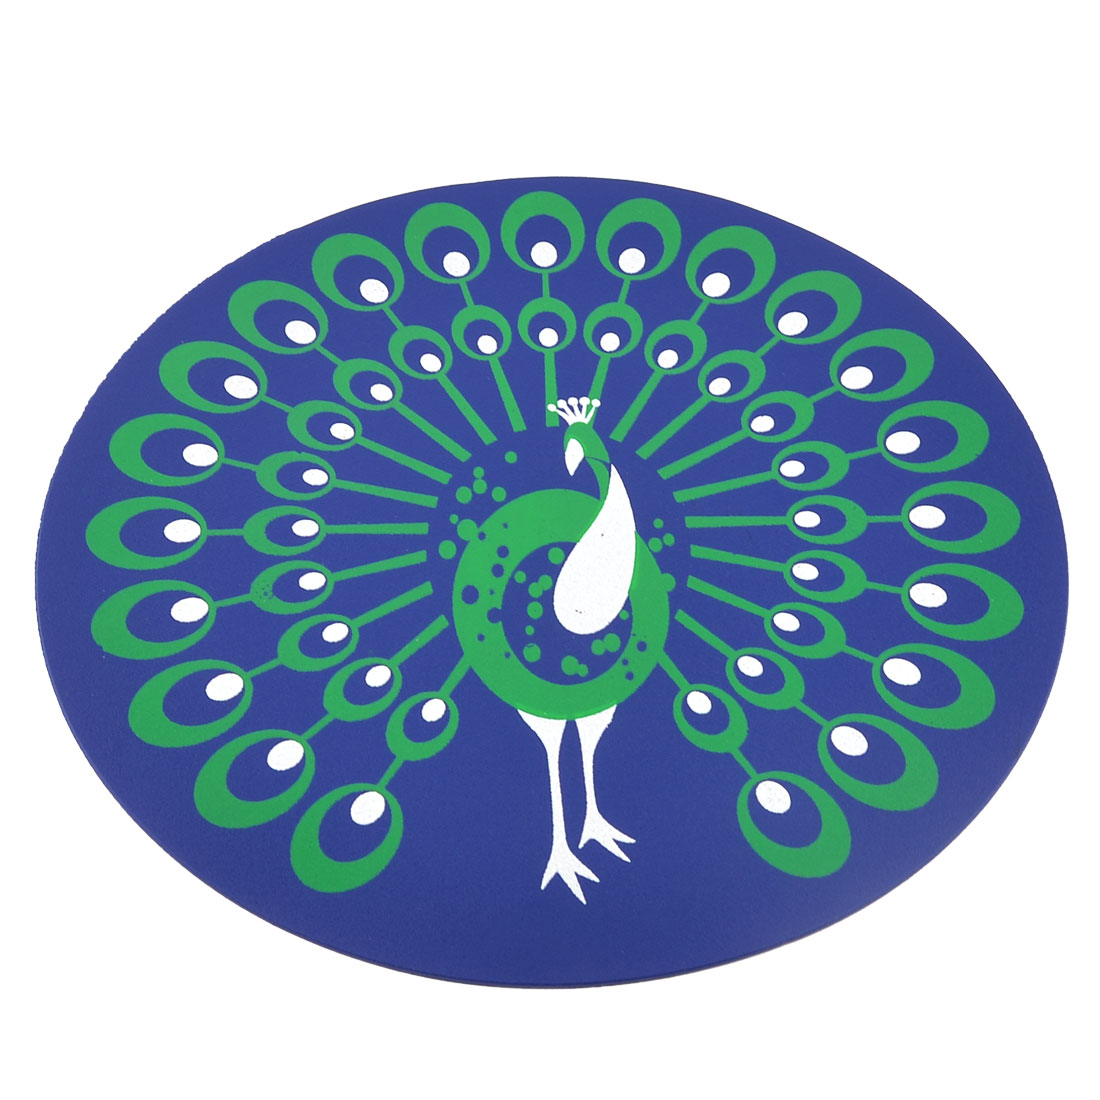 Green White Peacock Pattern Navy Blue Round Computer Mouse Pad Mat